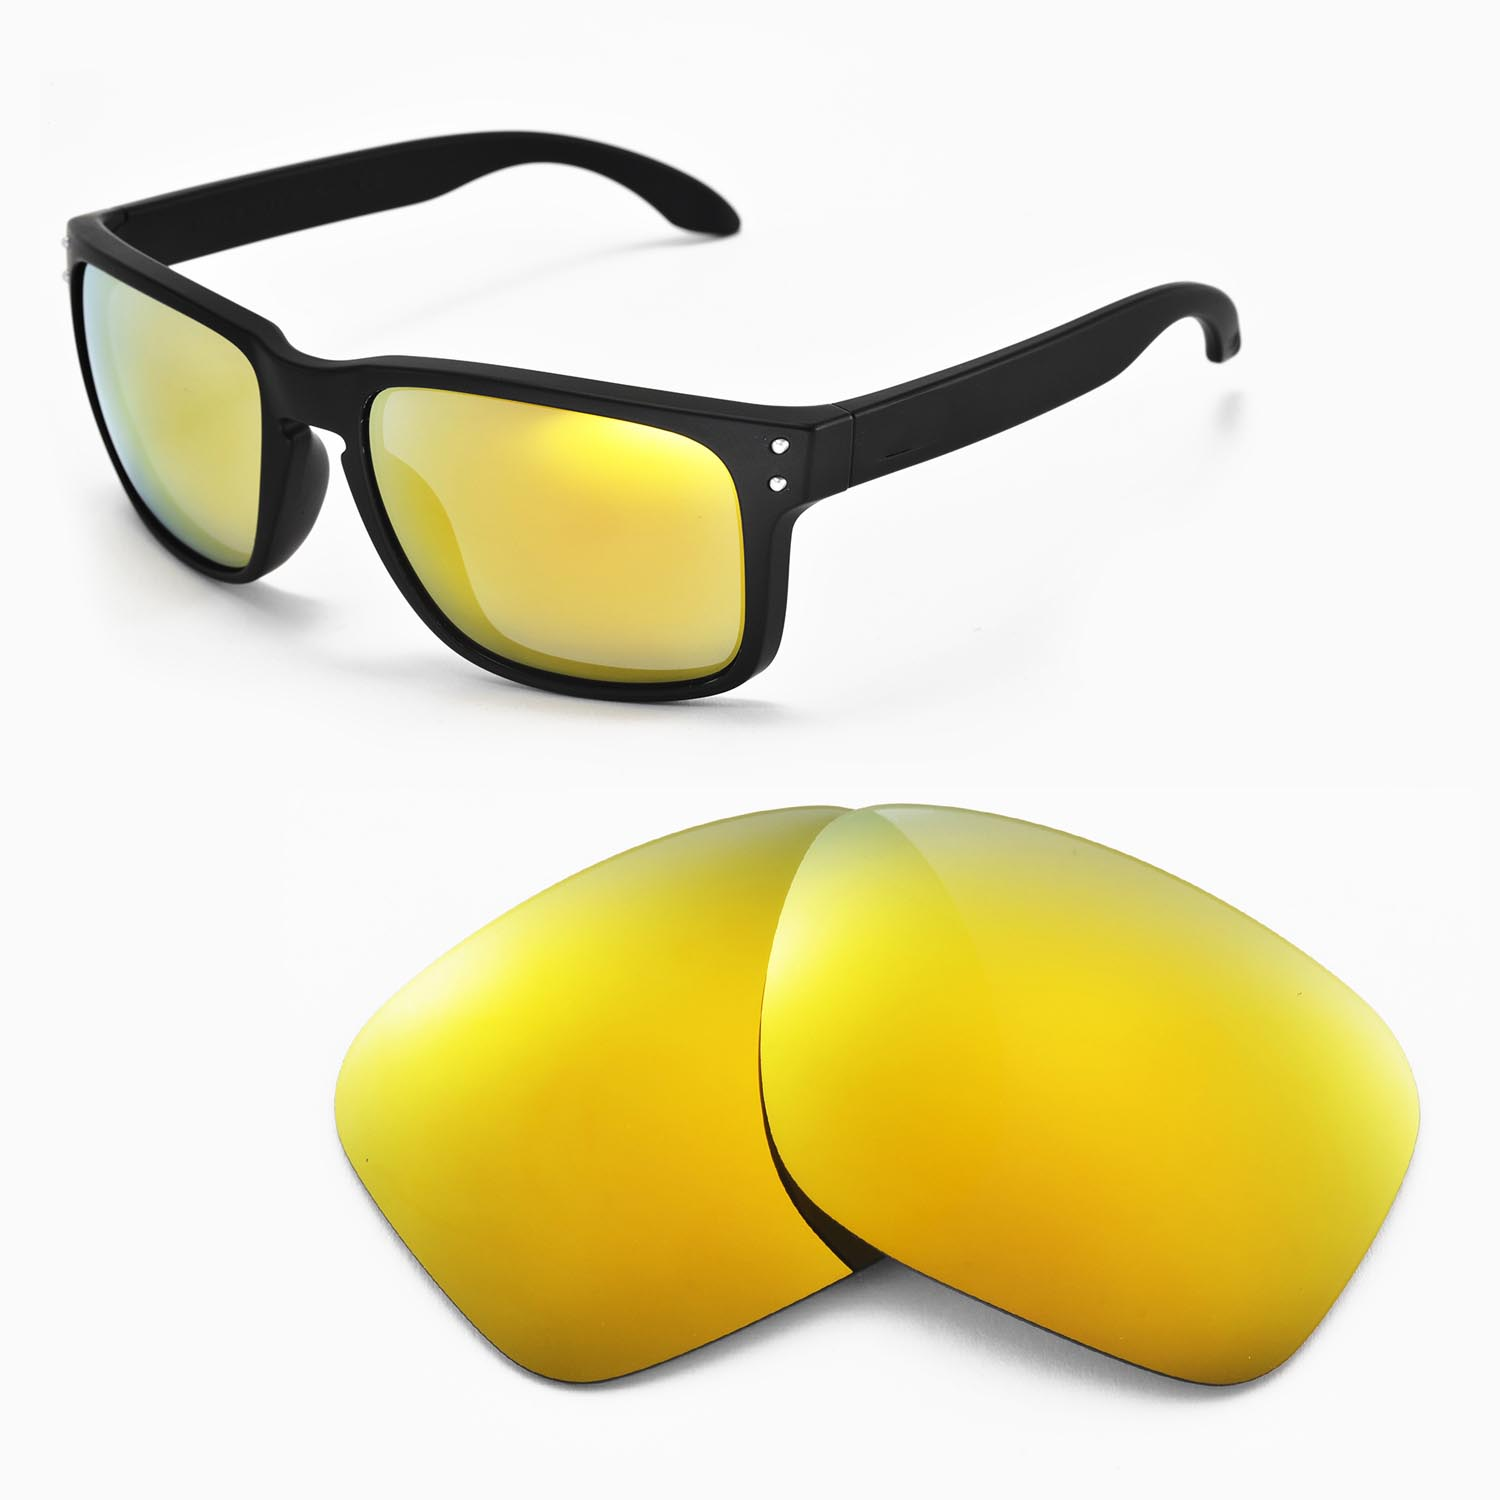 Details about New Walleva Polarized 24K Gold Replacement Lenses For Oakley  Holbrook Sunglasses ef61bfd109